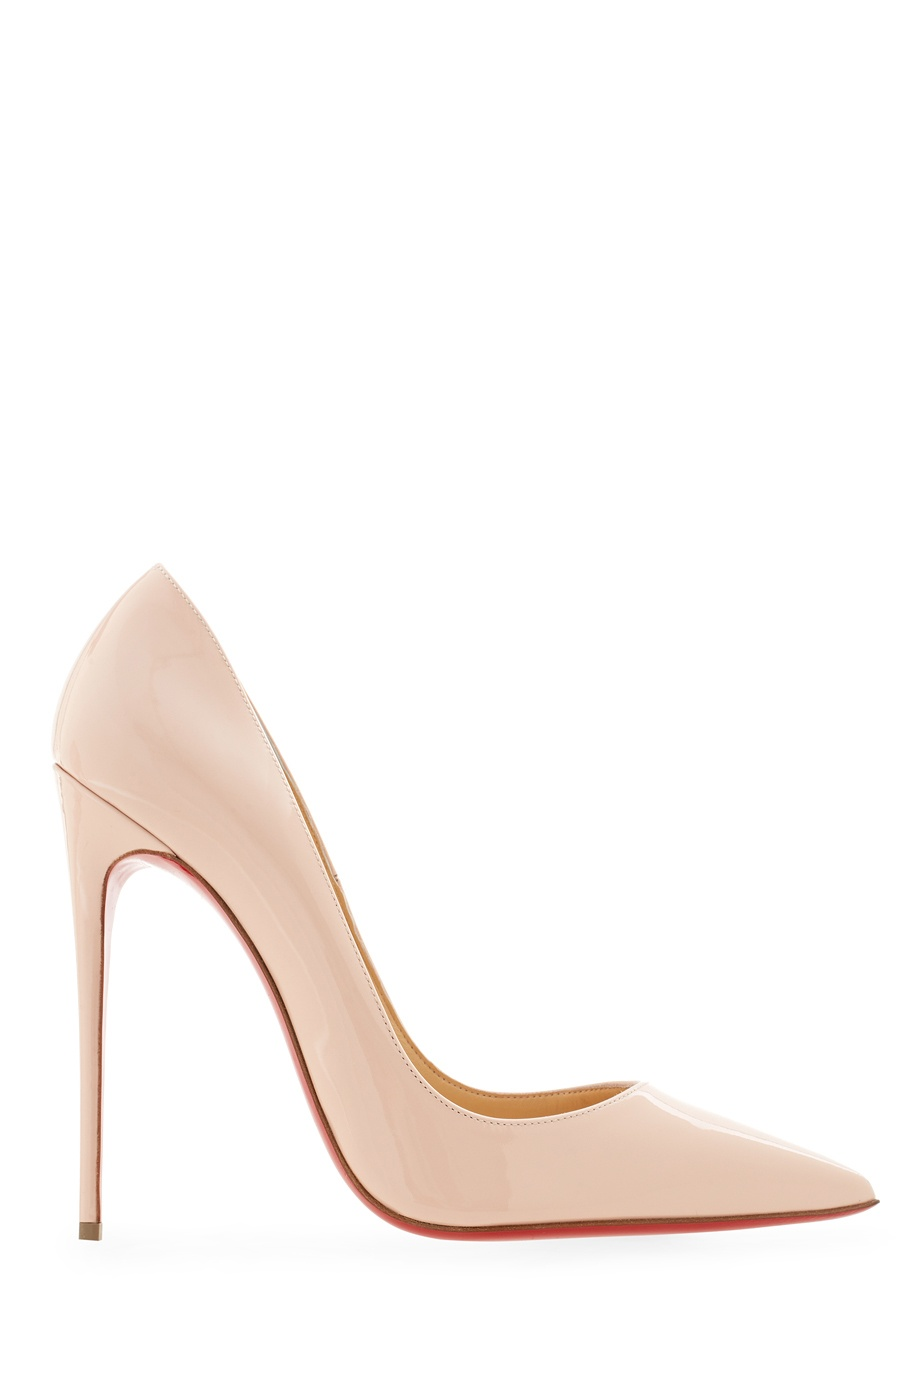 Кожаные туфли So Kate 120 Christian Louboutin (фото)